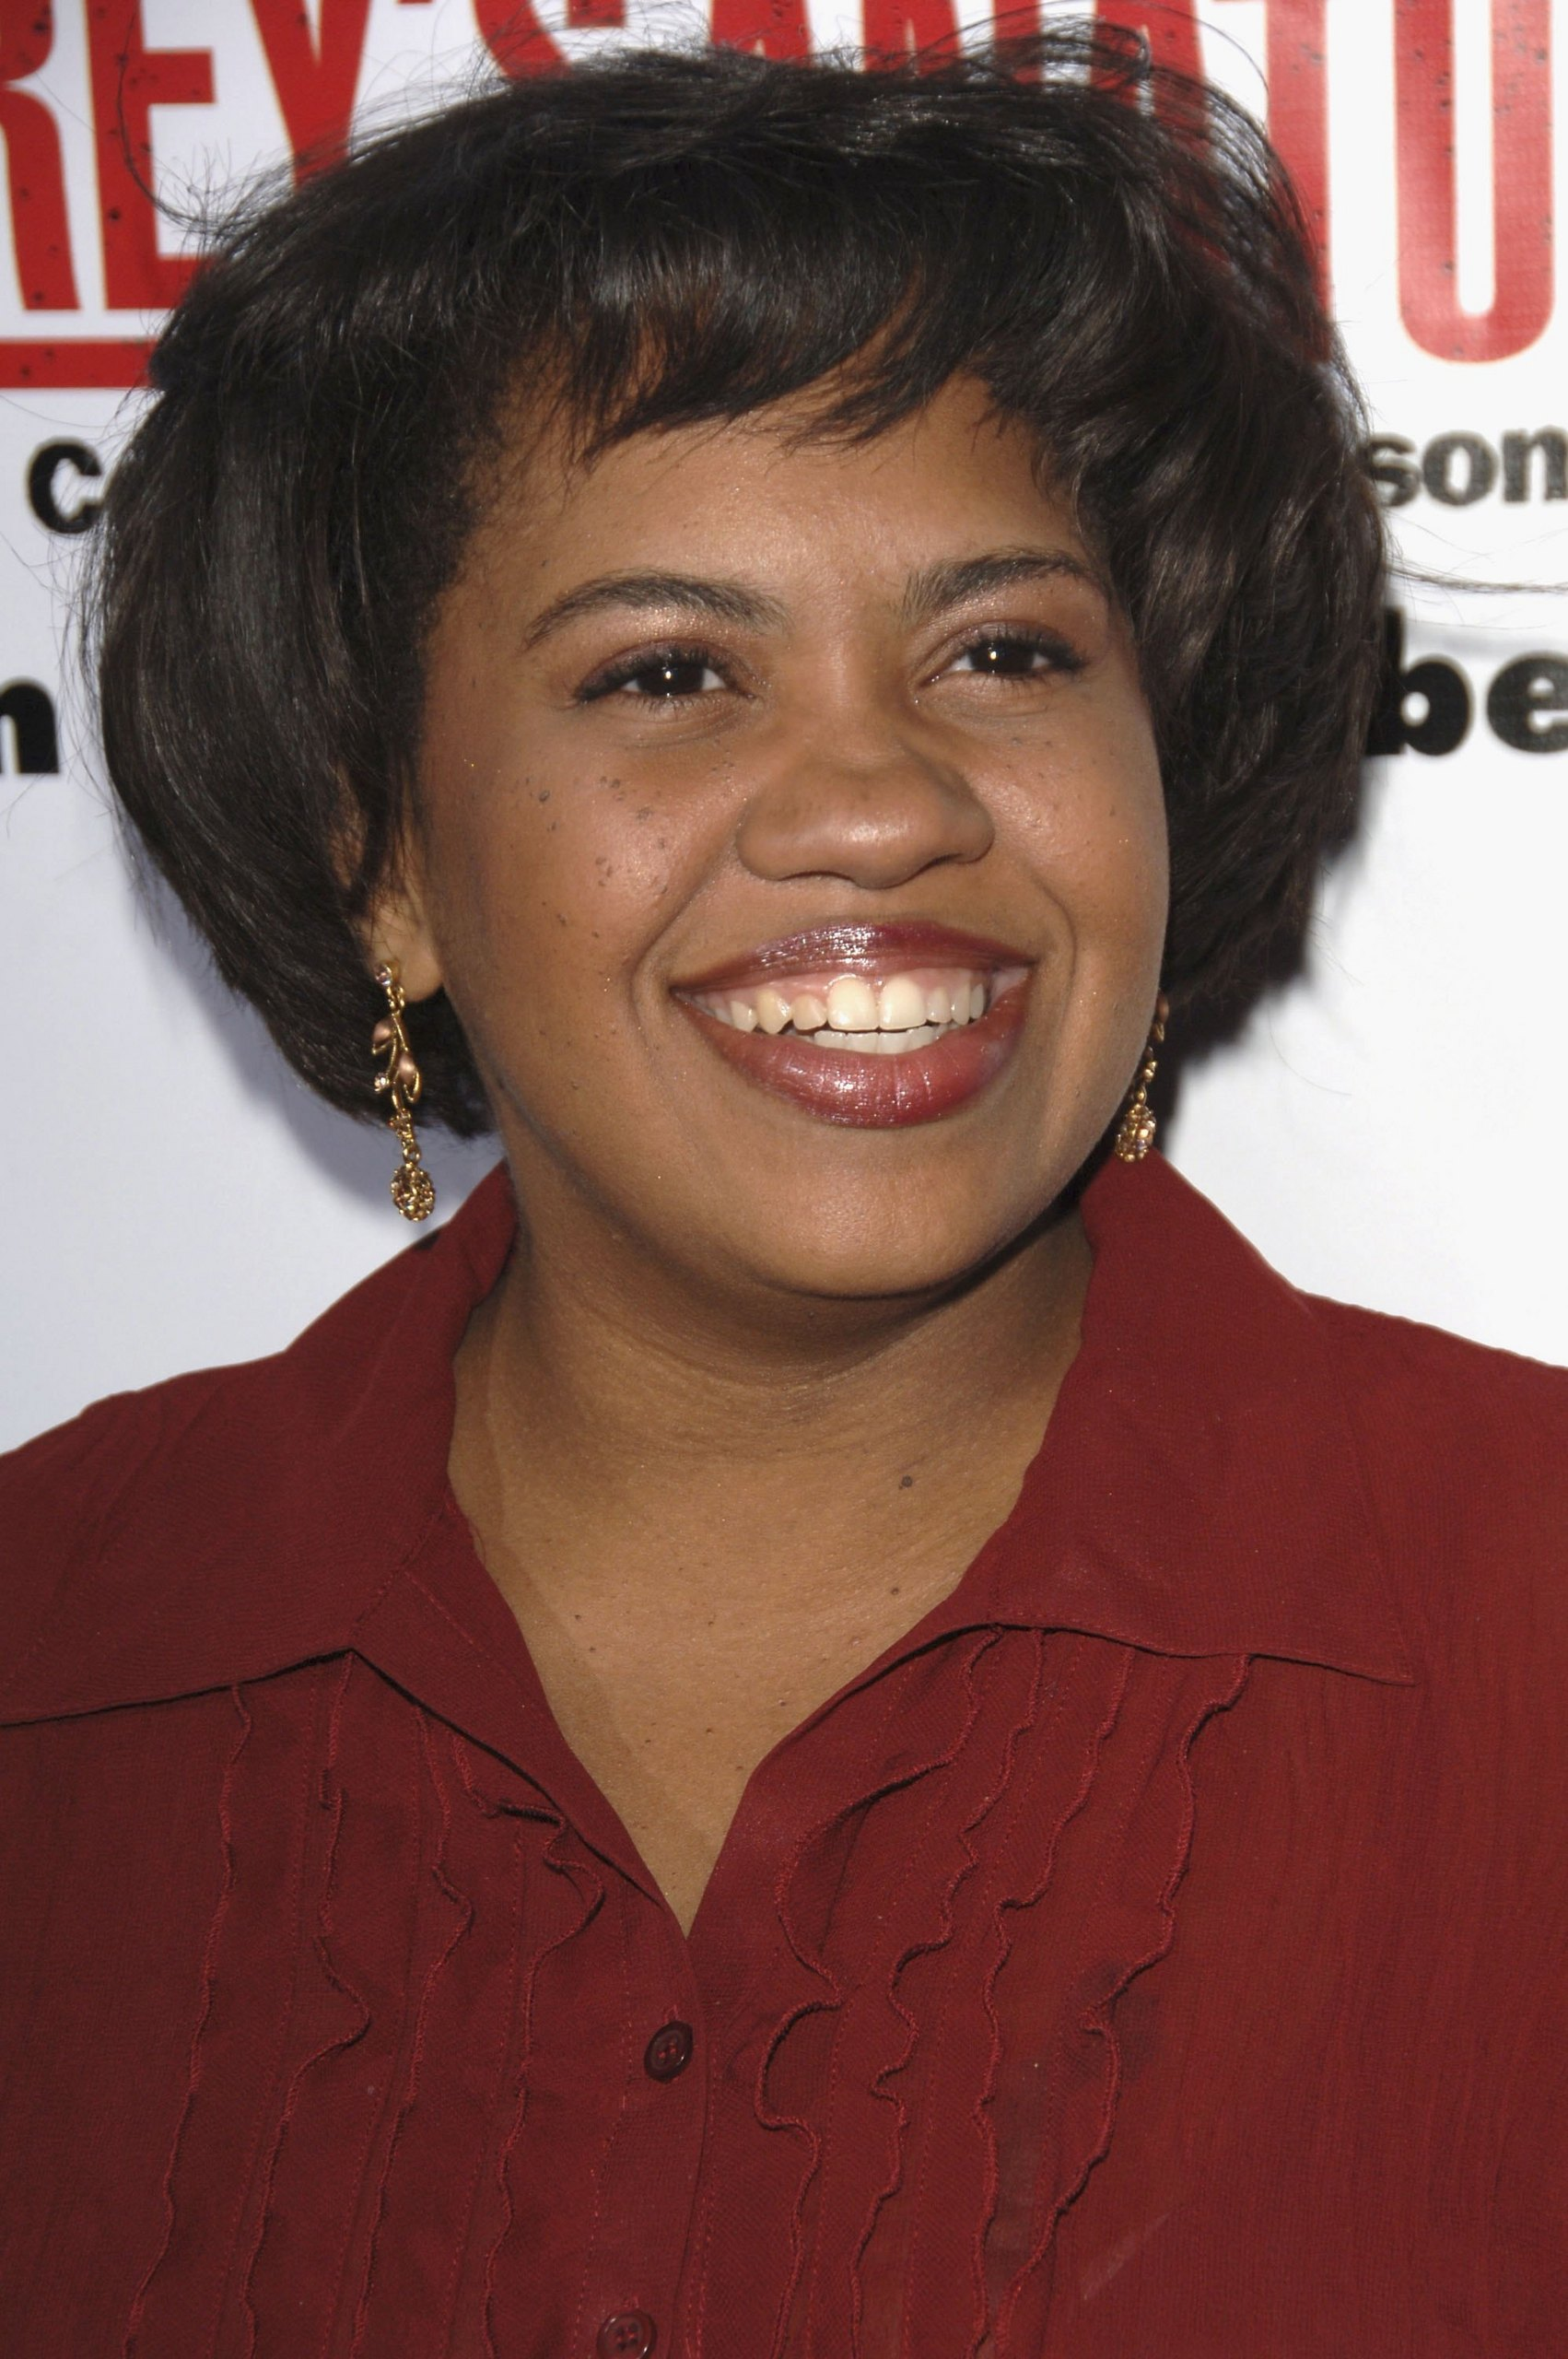 chandra wilson taillechandra wilson husband, chandra wilson wikipedia, chandra wilson instagram, chandra wilson, chandra wilson height, chandra wilson twitter, chandra wilson family, chandra wilson leaving grey anatomy, chandra wilson sex and the city, chandra wilson imdb, chandra wilson cosby show, chandra wilson interview, chandra wilson biography, chandra wilson größe, chandra wilson net worth, chandra wilson weight, chandra wilson taille, chandra wilson daughter illness, chandra wilson marito, chandra wilson weight and height